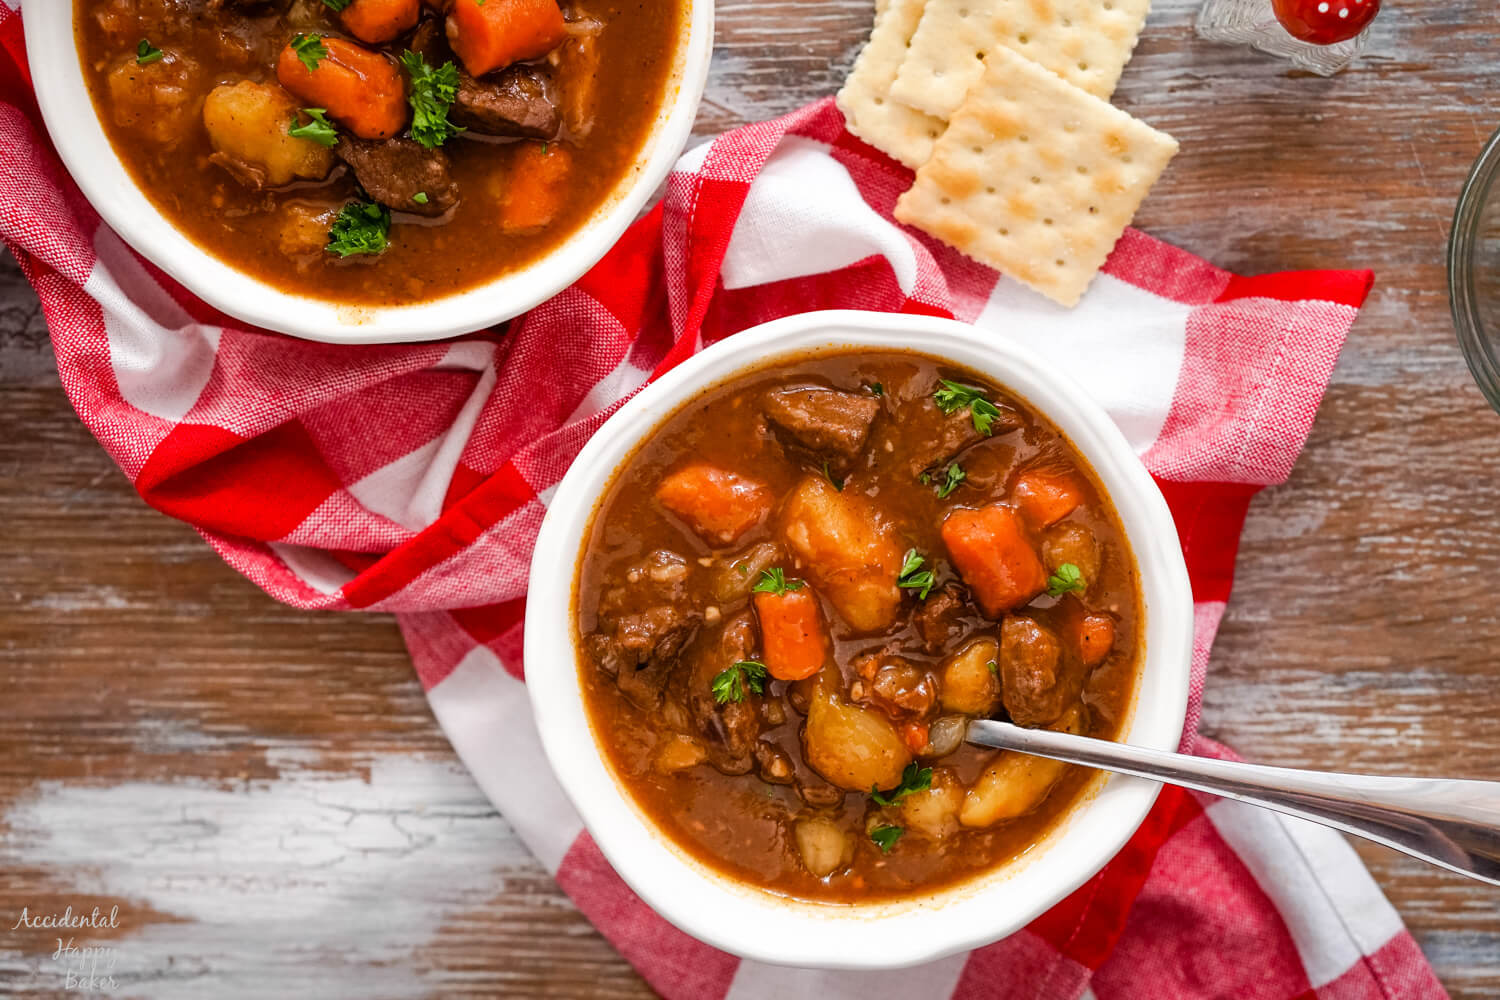 Two bowls of beef stew on a red checkered cloth with saltine crackers.